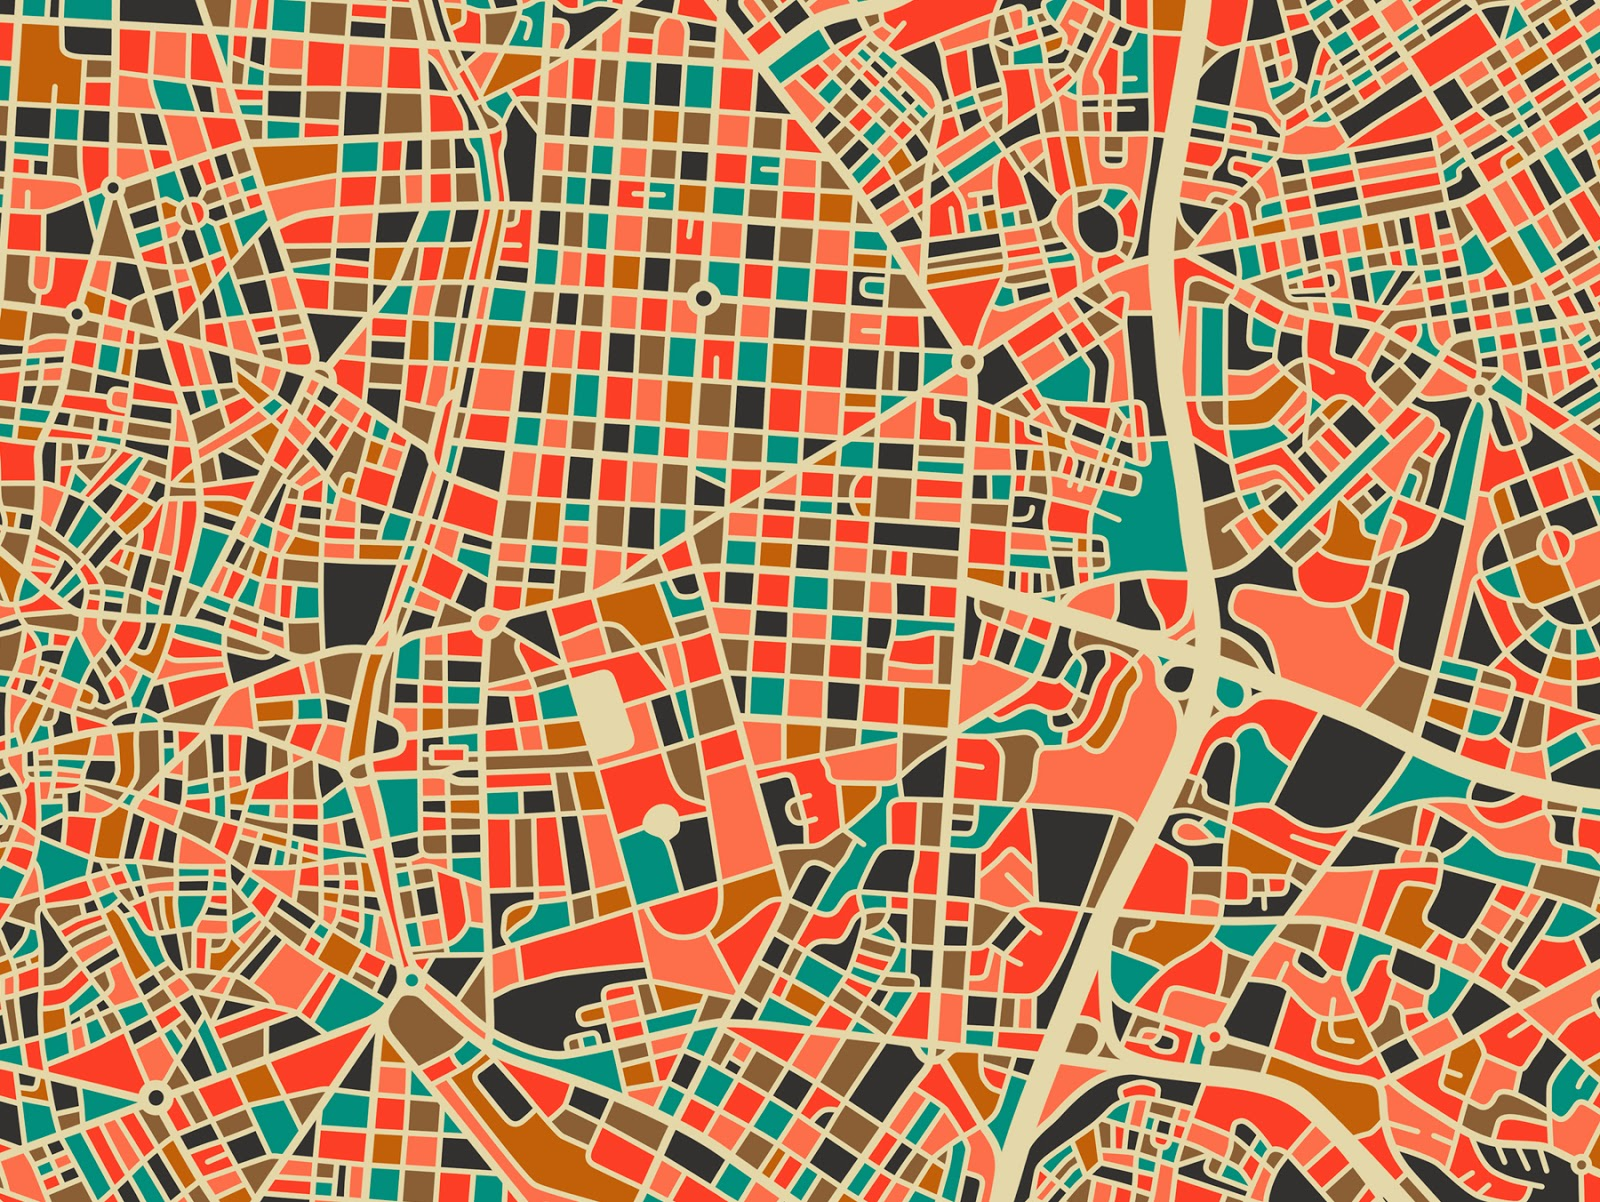 Madrid (zoom) ©Jazzberry Blues - City Maps. Ilustración | Illustration